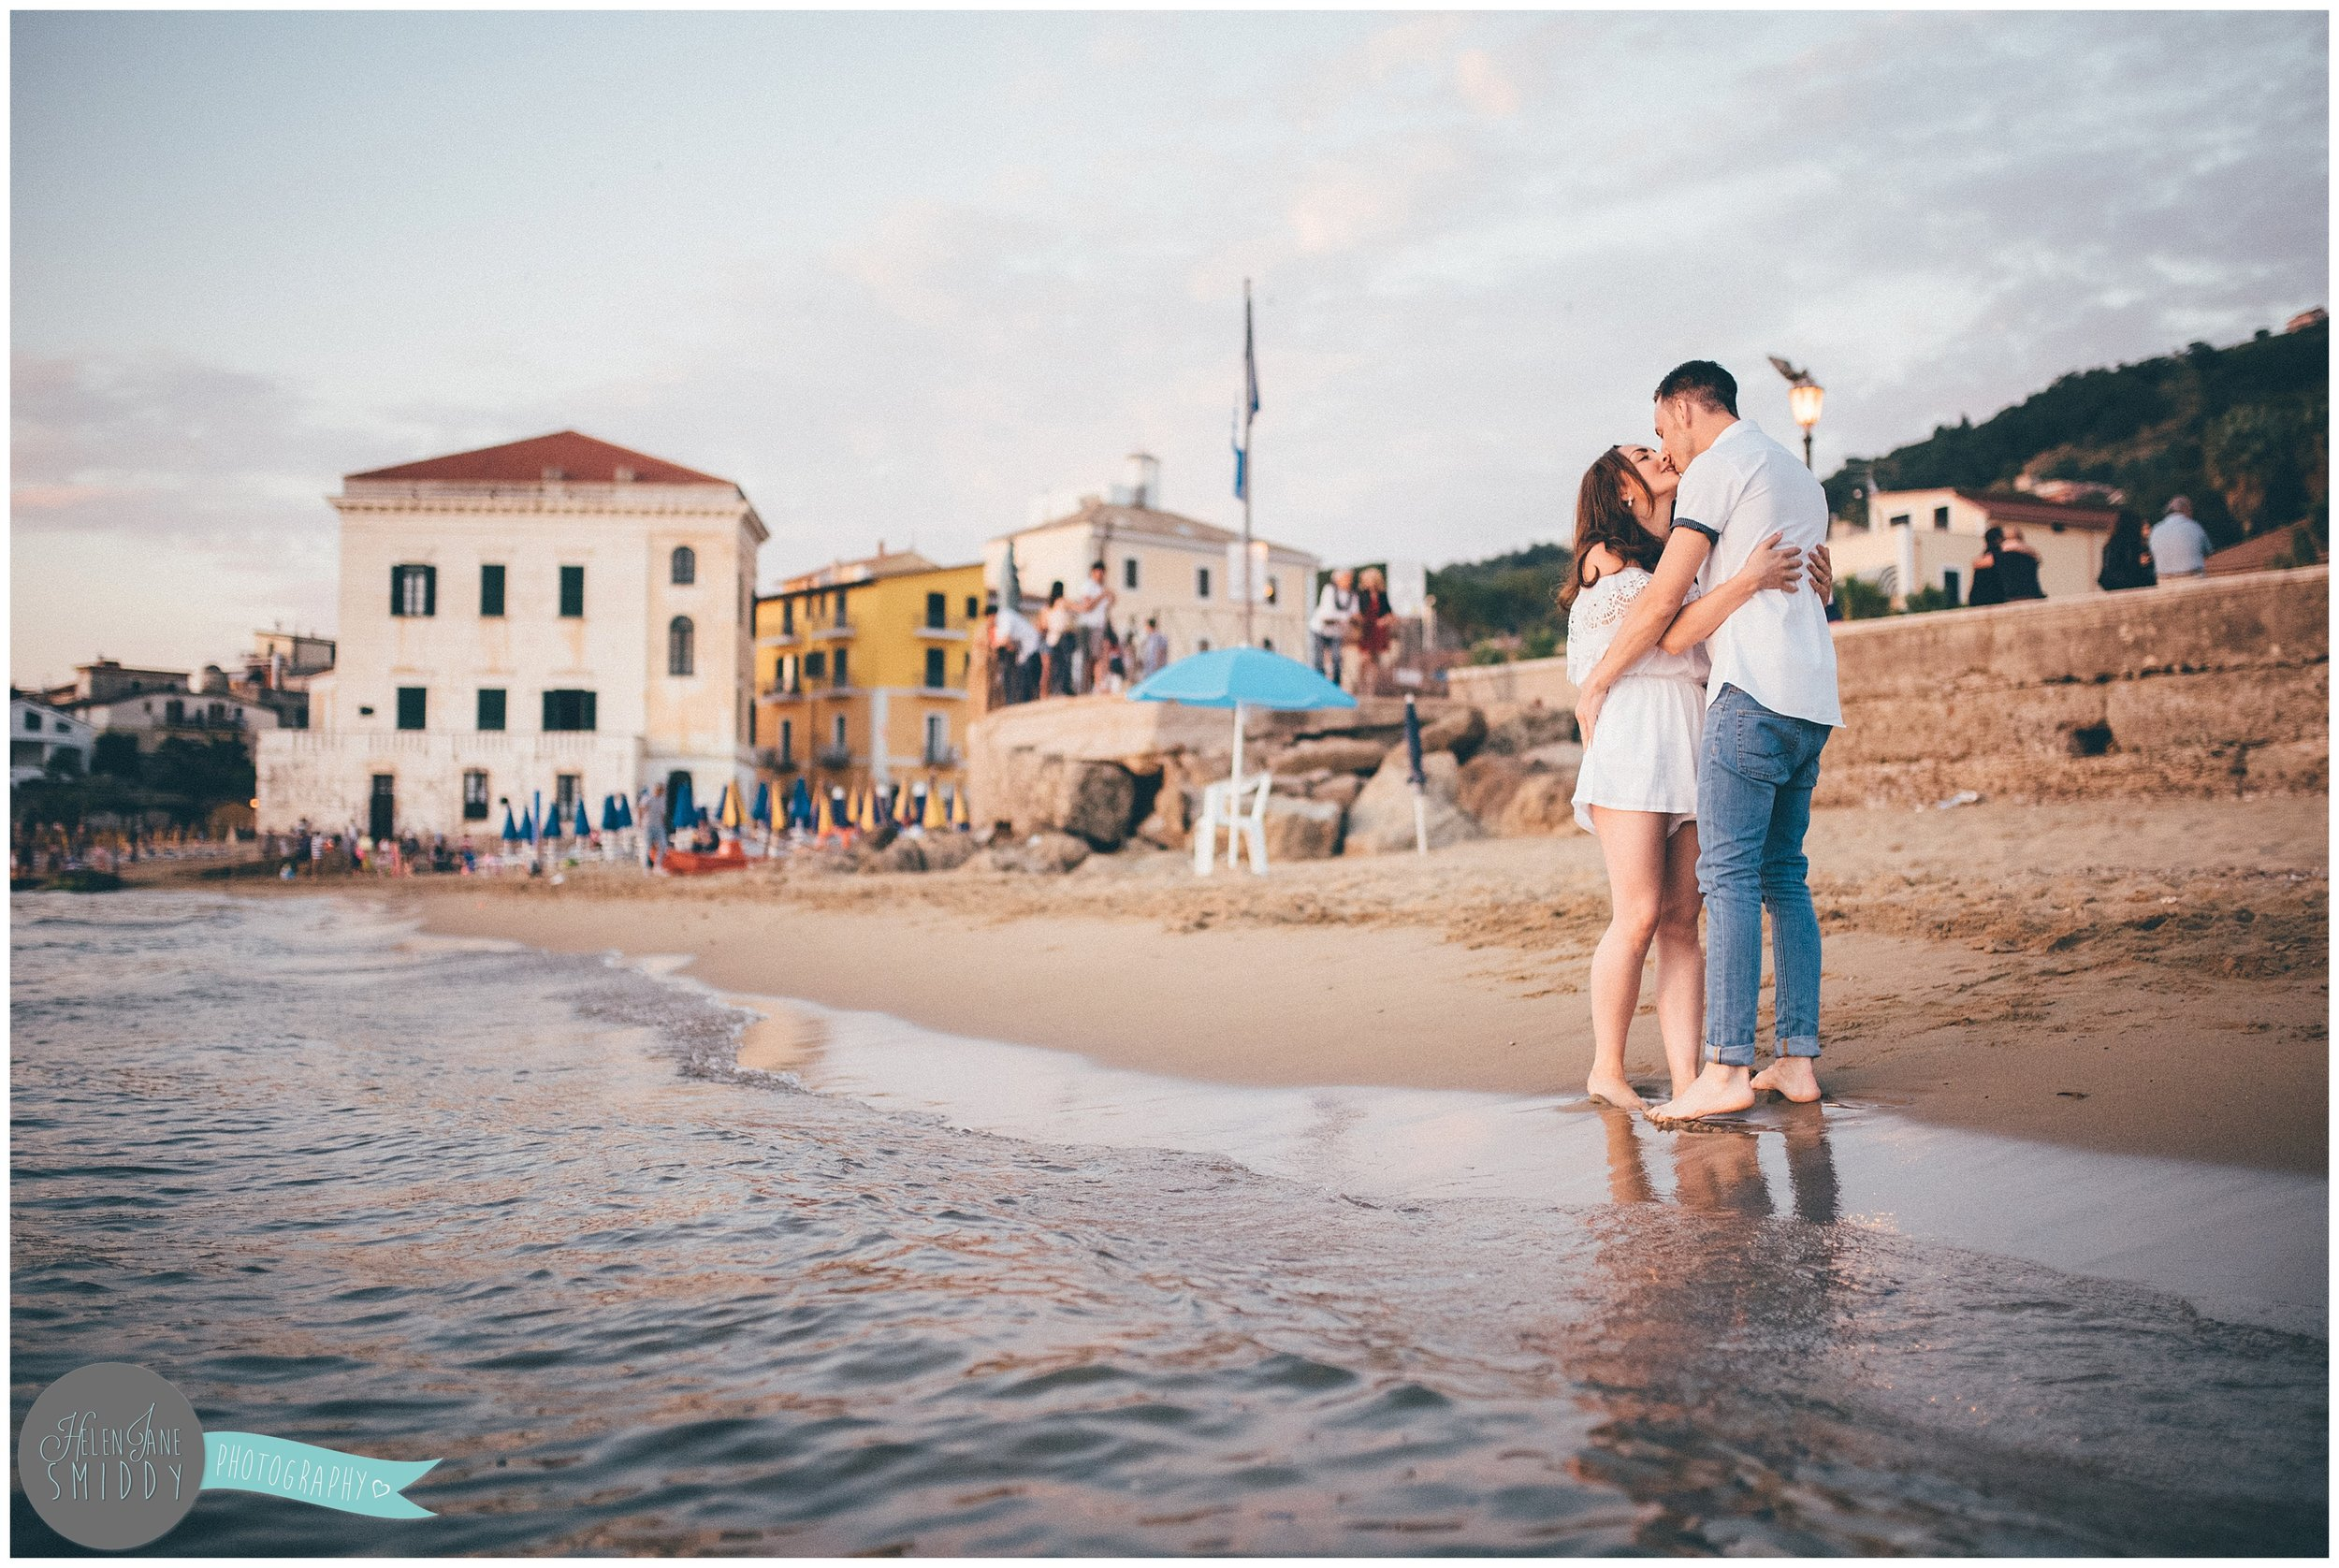 The couple stand in the water kissing, with Santa Maria di Castellabate in the background.